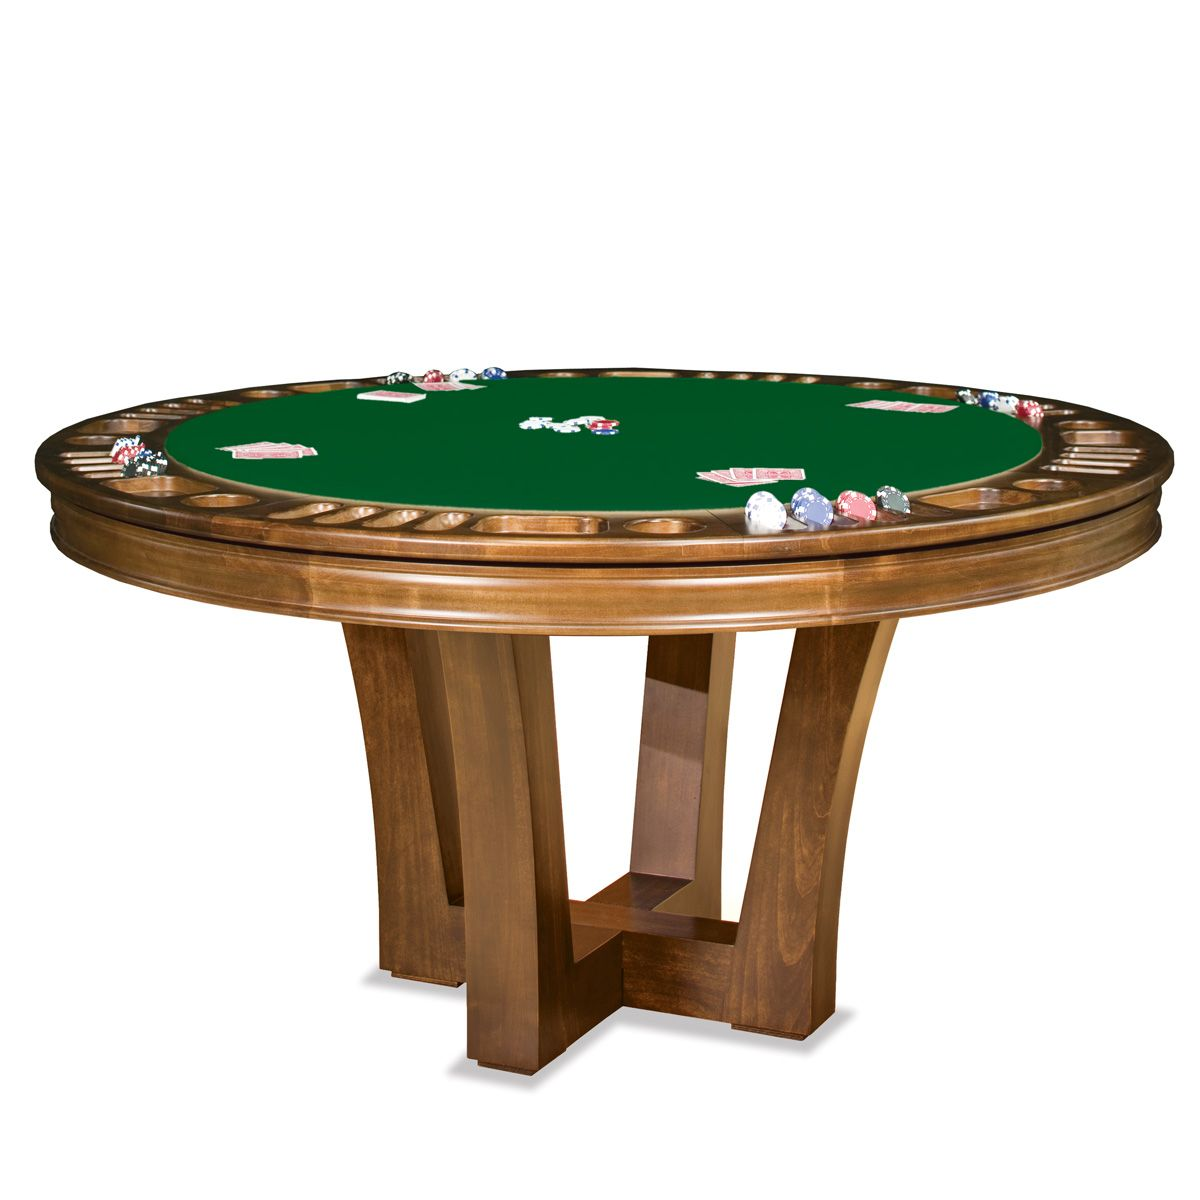 Loft Reversible Top Game Table Poker Table Table Games Game Room